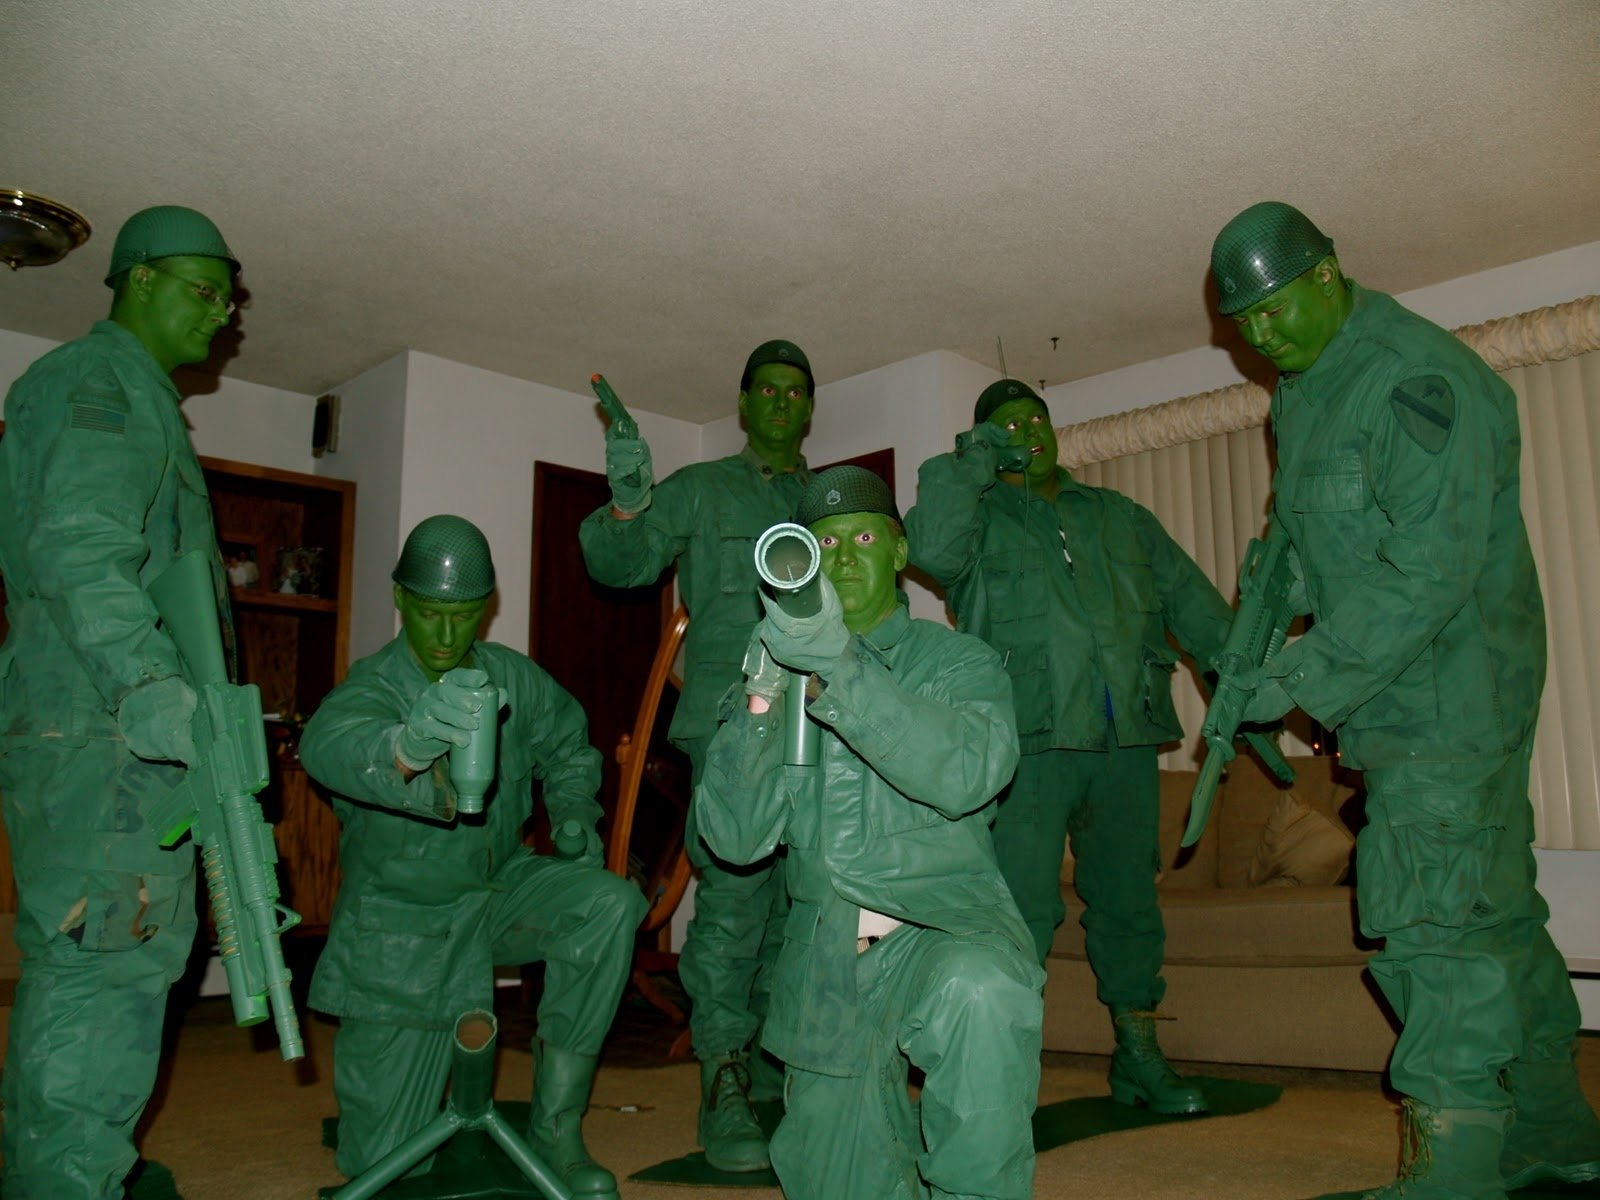 10 Great Group Of 5 Halloween Costume Ideas this list of group halloween costume ideas will blow your mind 10 2020